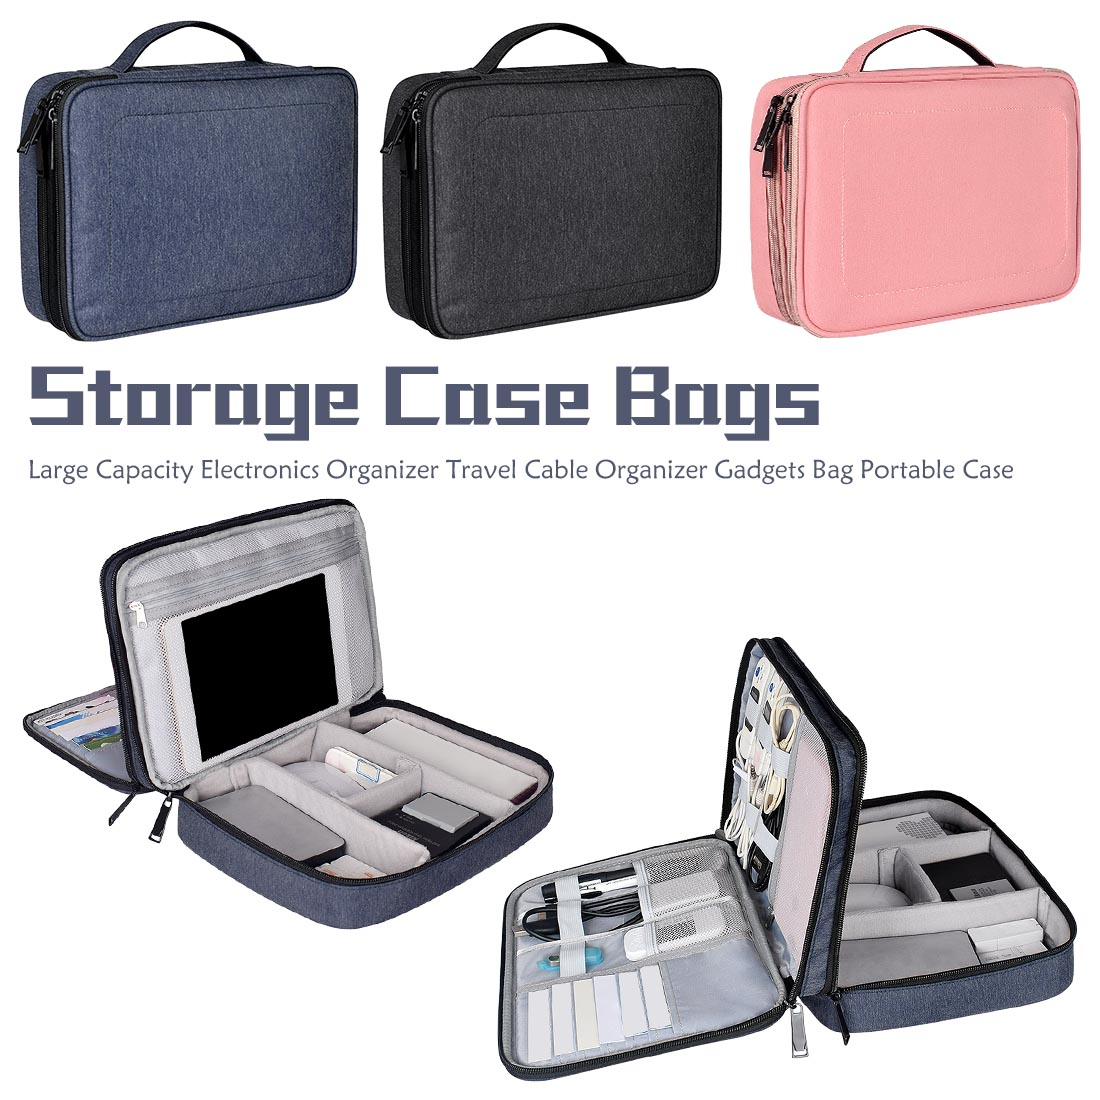 Digital Accessories Storage Bag Large Capacity Electronics Organizer Travel Cable Organizer Gadgets Bag Portable Case